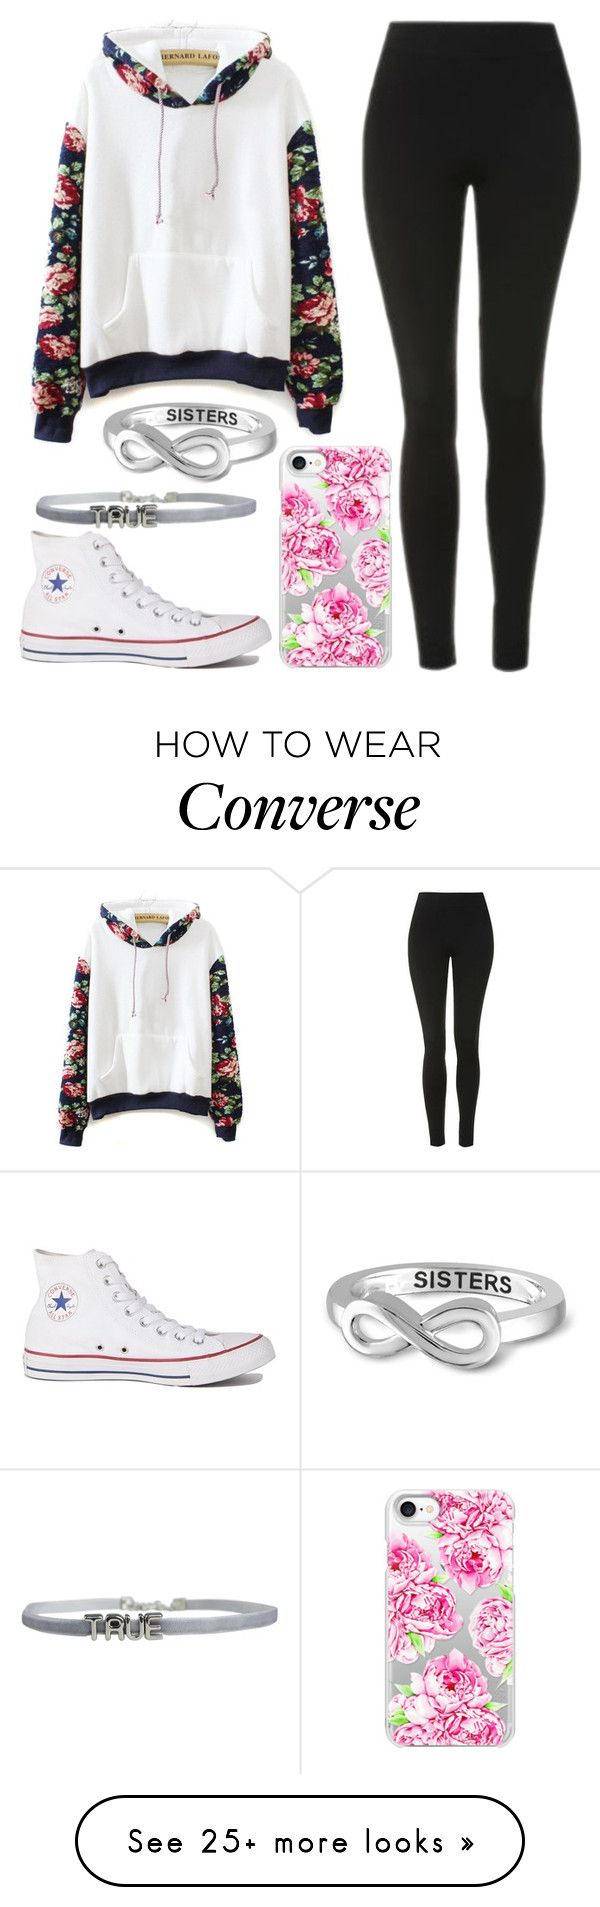 """Injury- Lala Slater"" by misshemmings96 on Polyvore featuring Topshop, WithChic, Casetify, Jewelonfire and Converse"